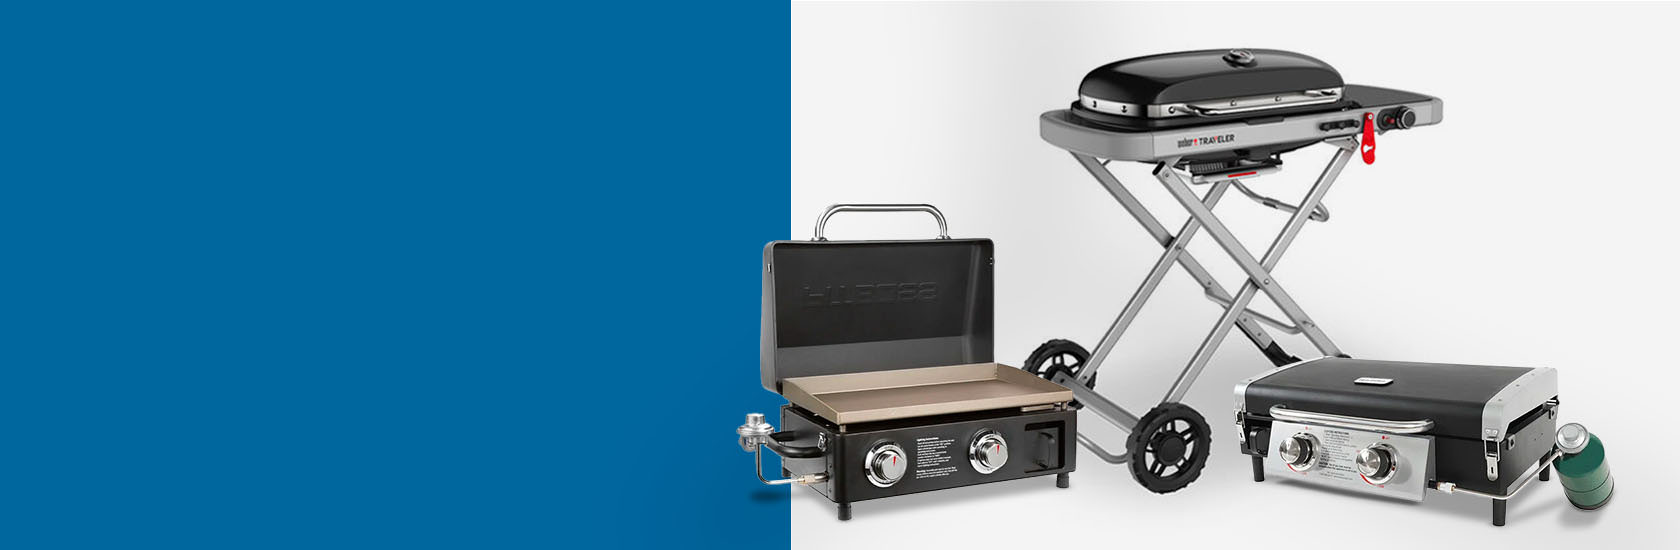 Sizzling Savings! Up to $60 off Grills & Griddles